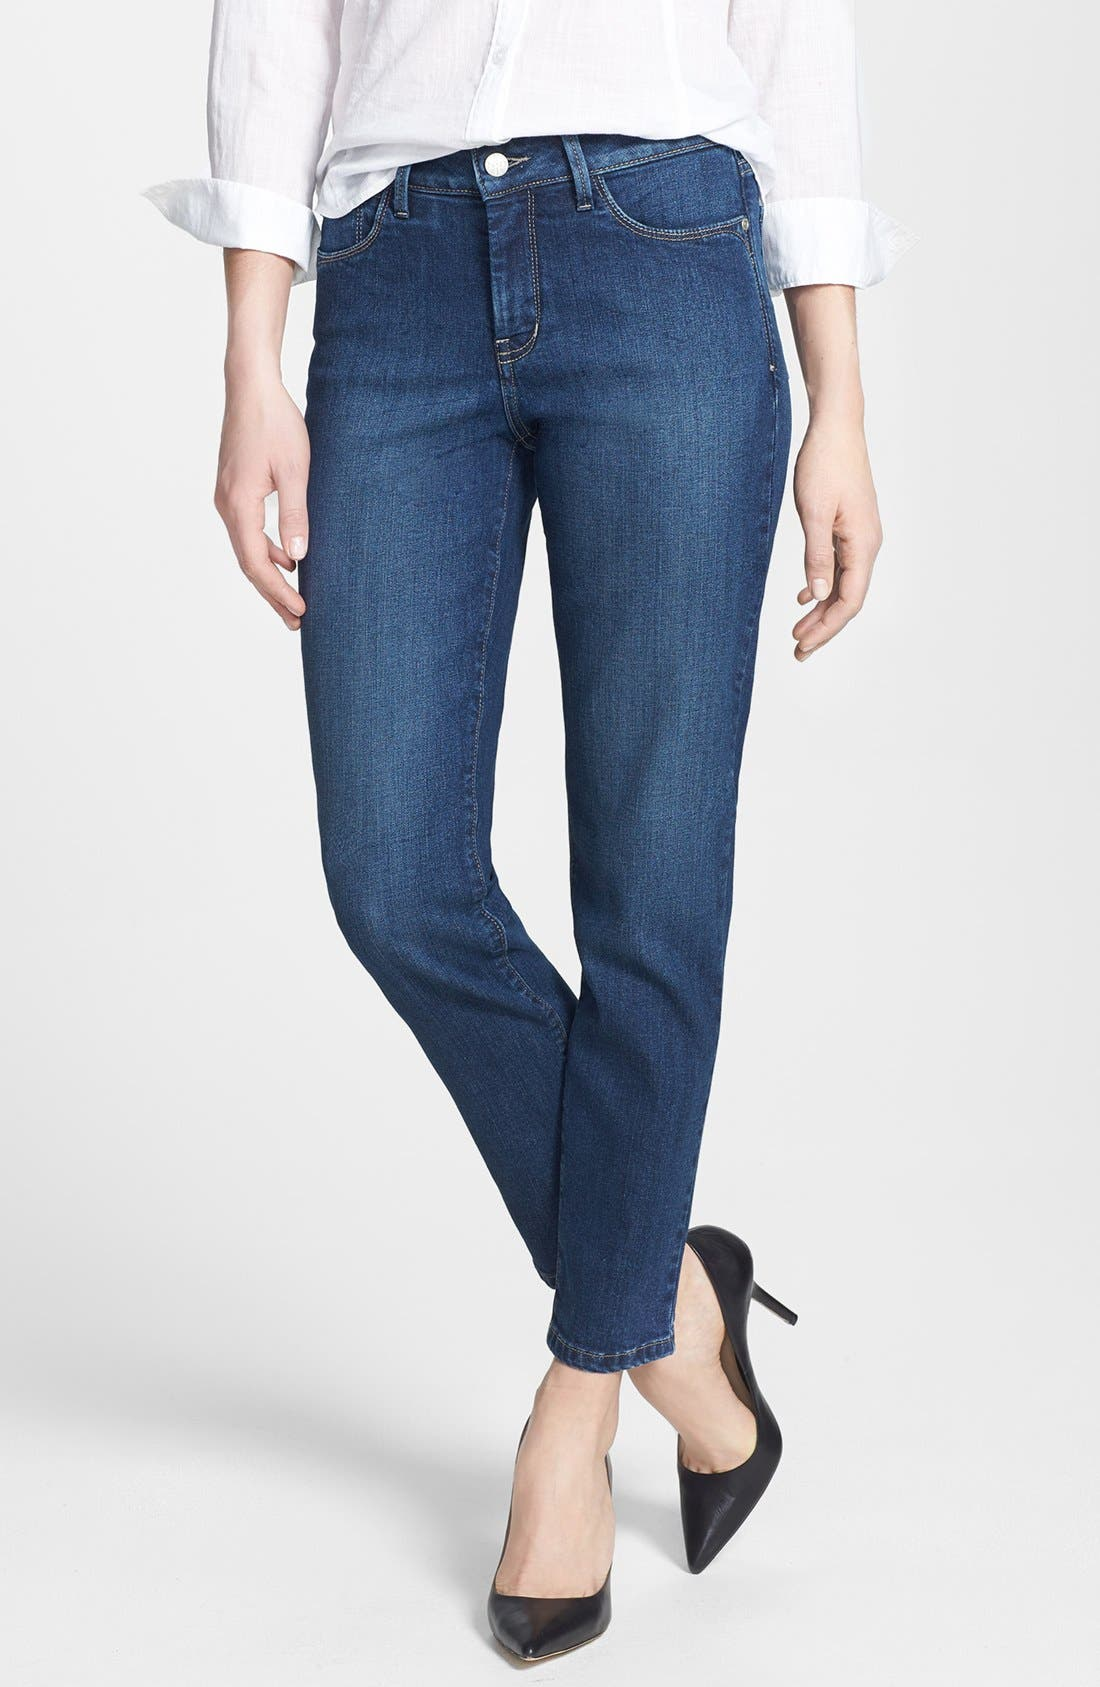 Main Image - NYDJ 'Clarissa' Fitted Stretch Ankle Skinny Jeans (Riverbank) (Regular & Petite)